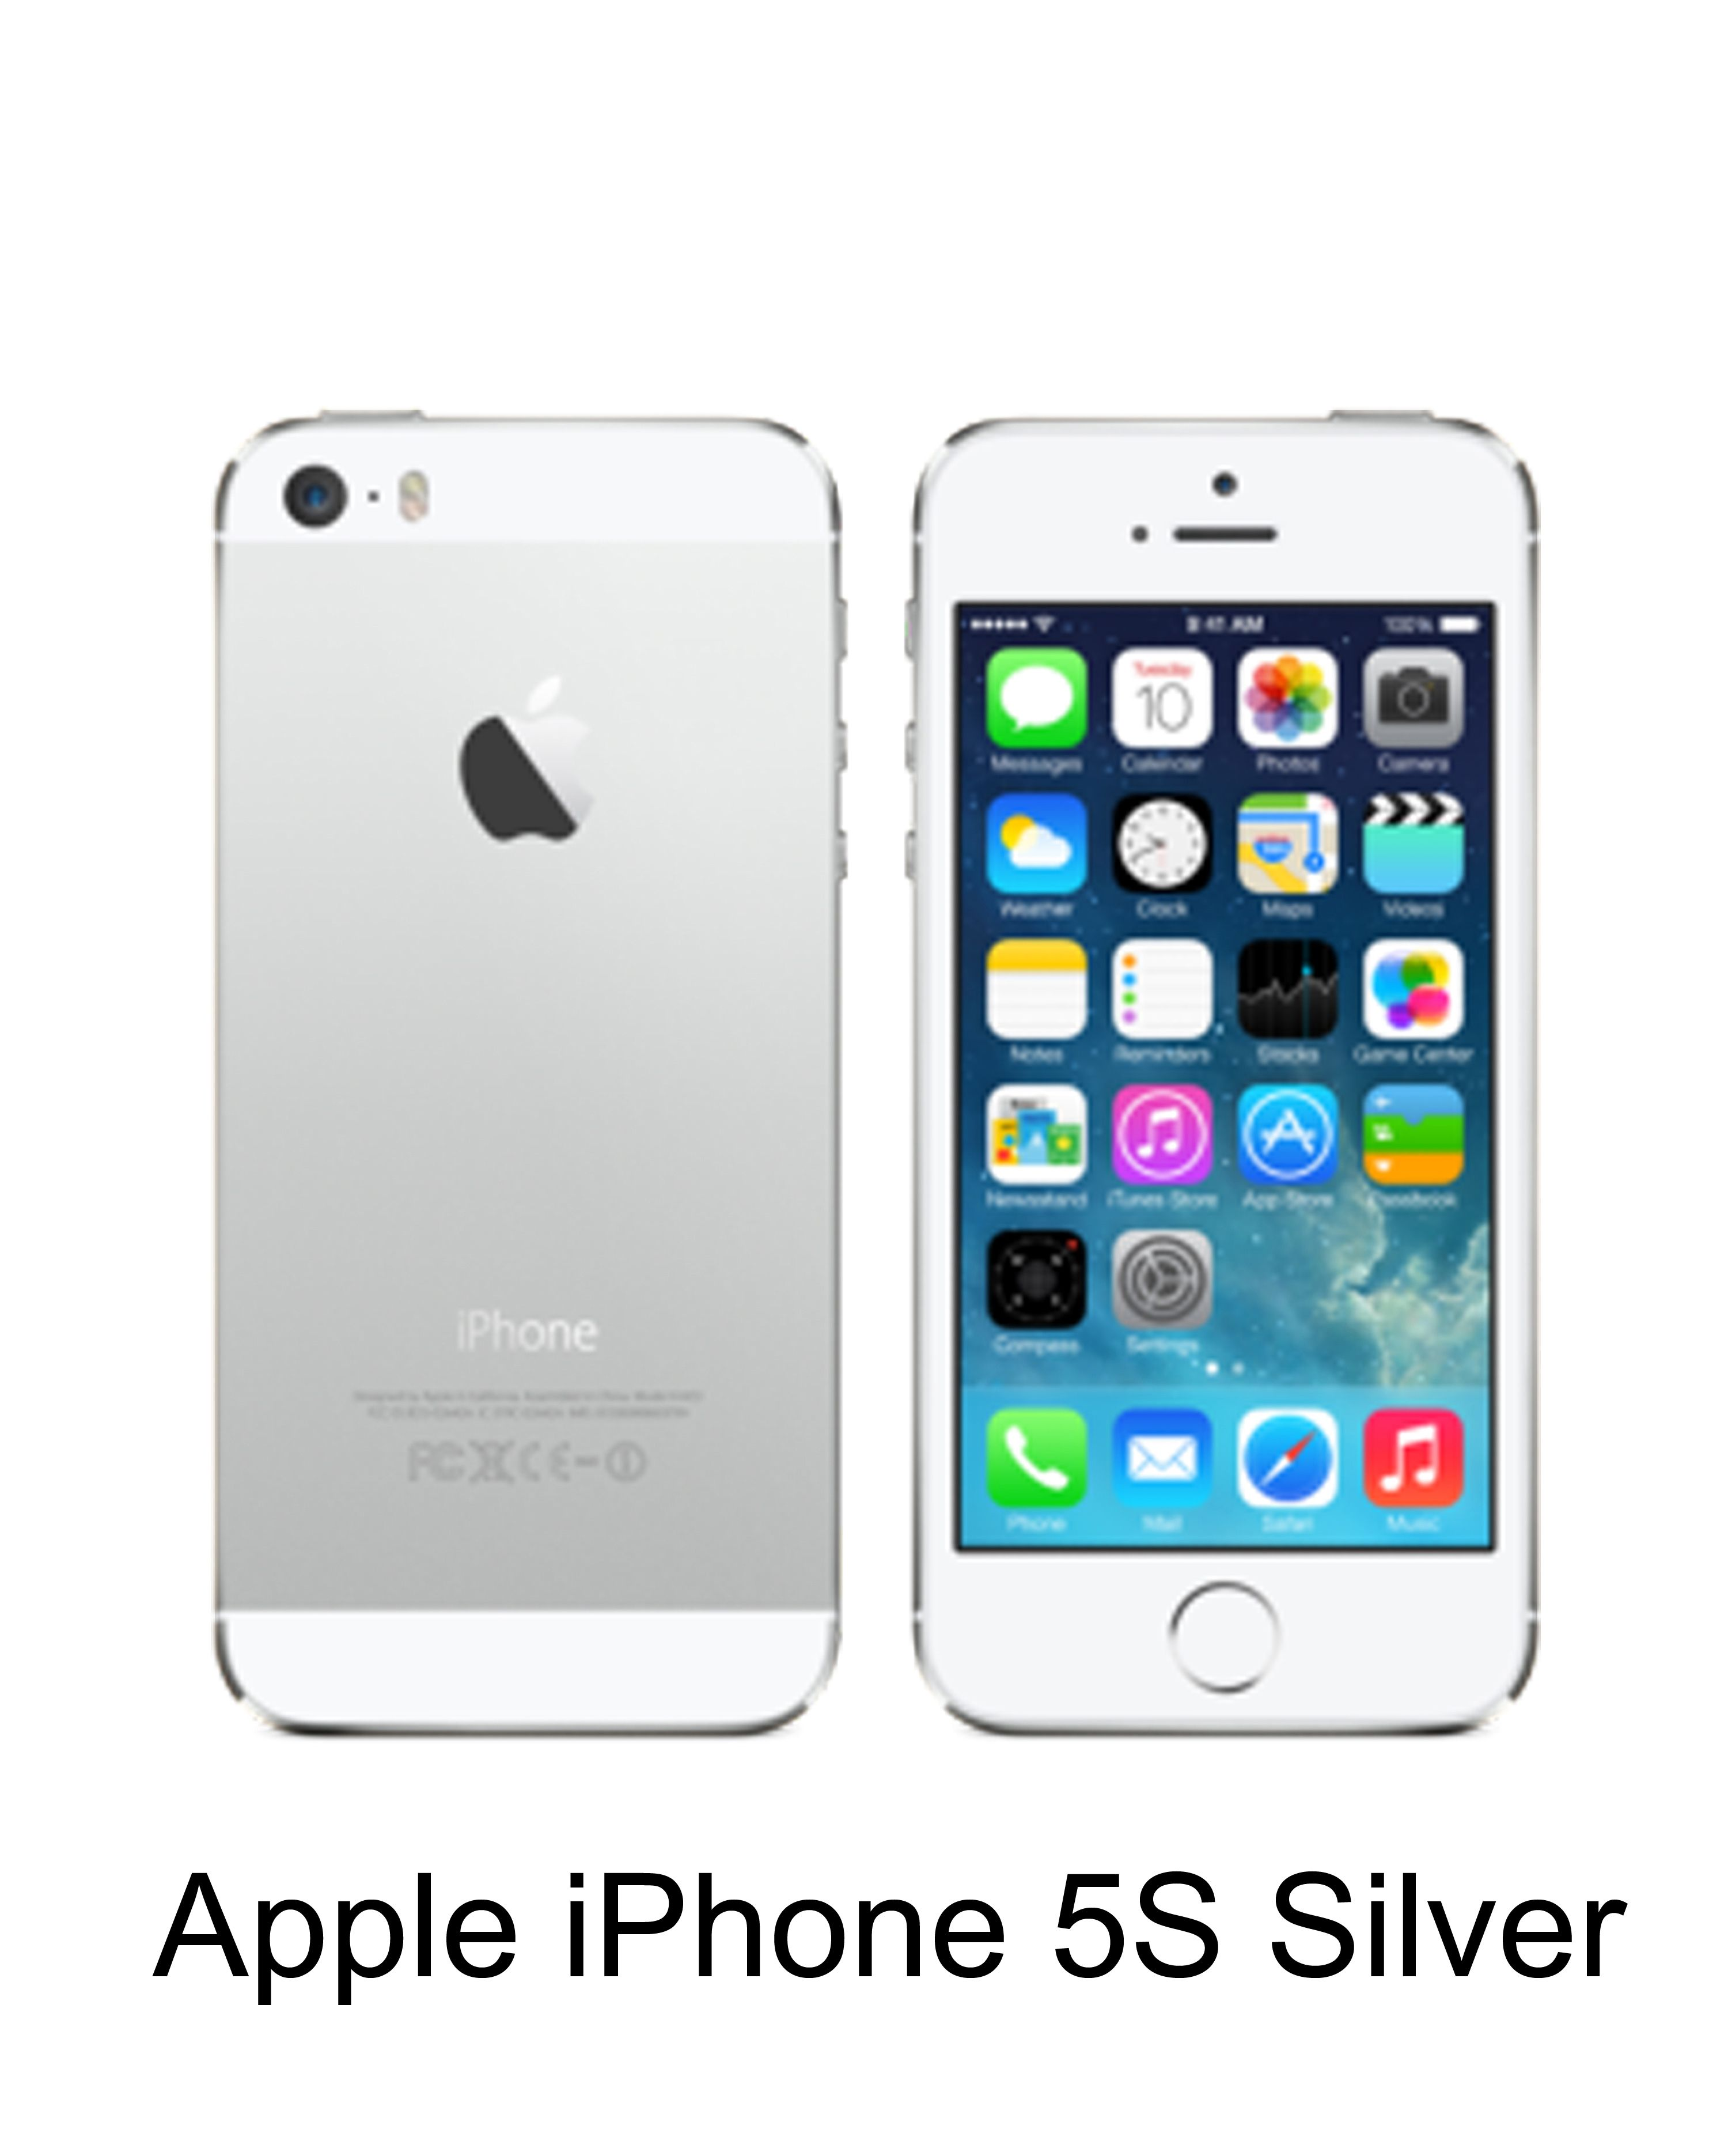 Apple Offers Best Price On IPhone 5S Silver In Bengaluru